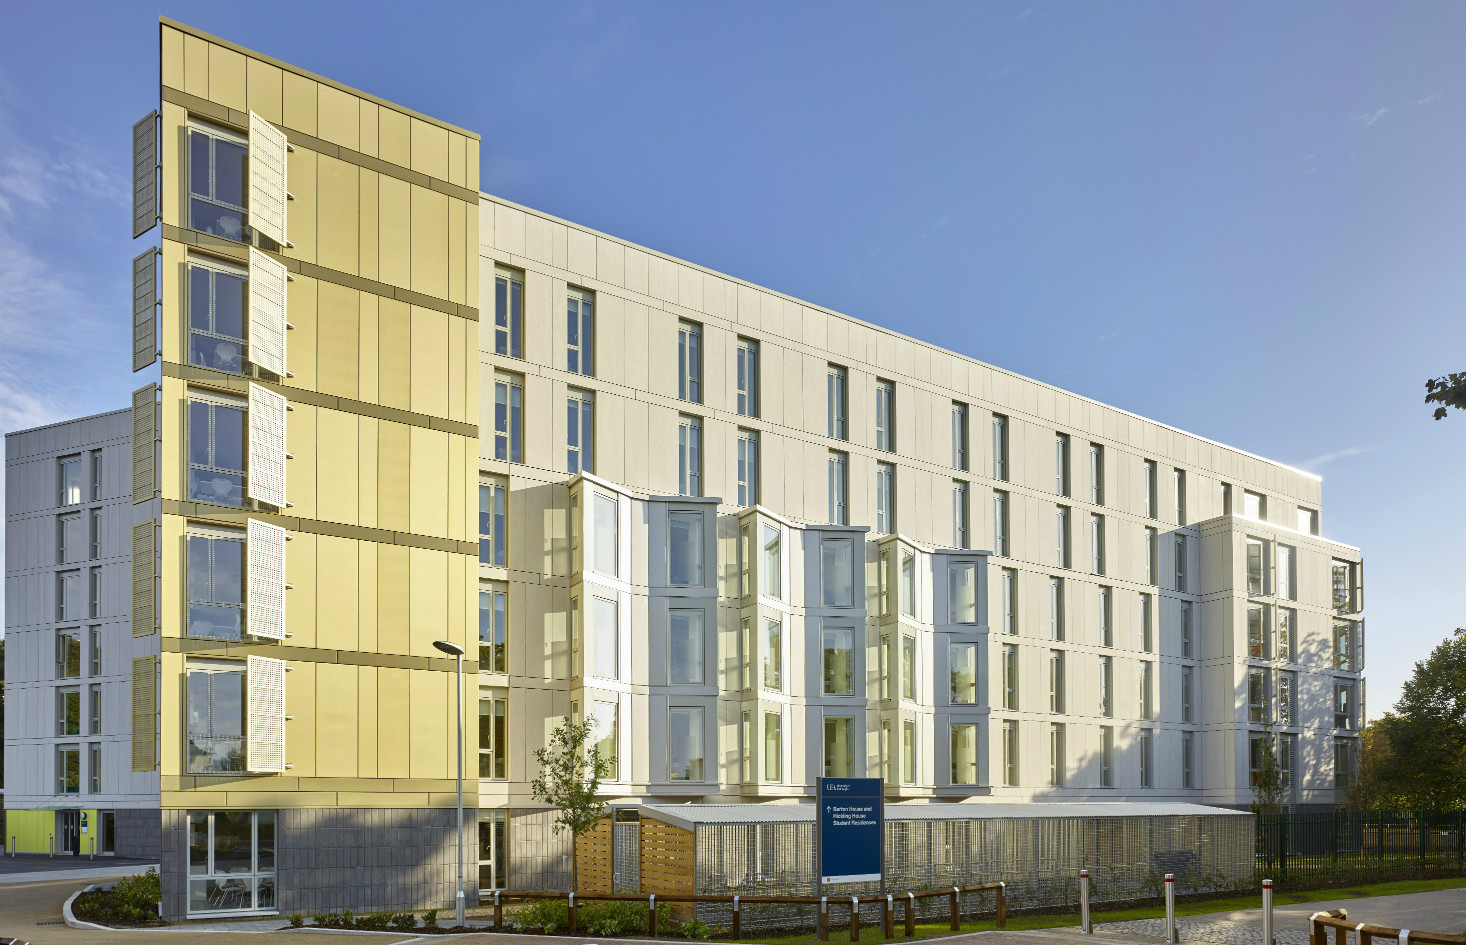 UEA-BlackdaleResidences_12-9-16_009web